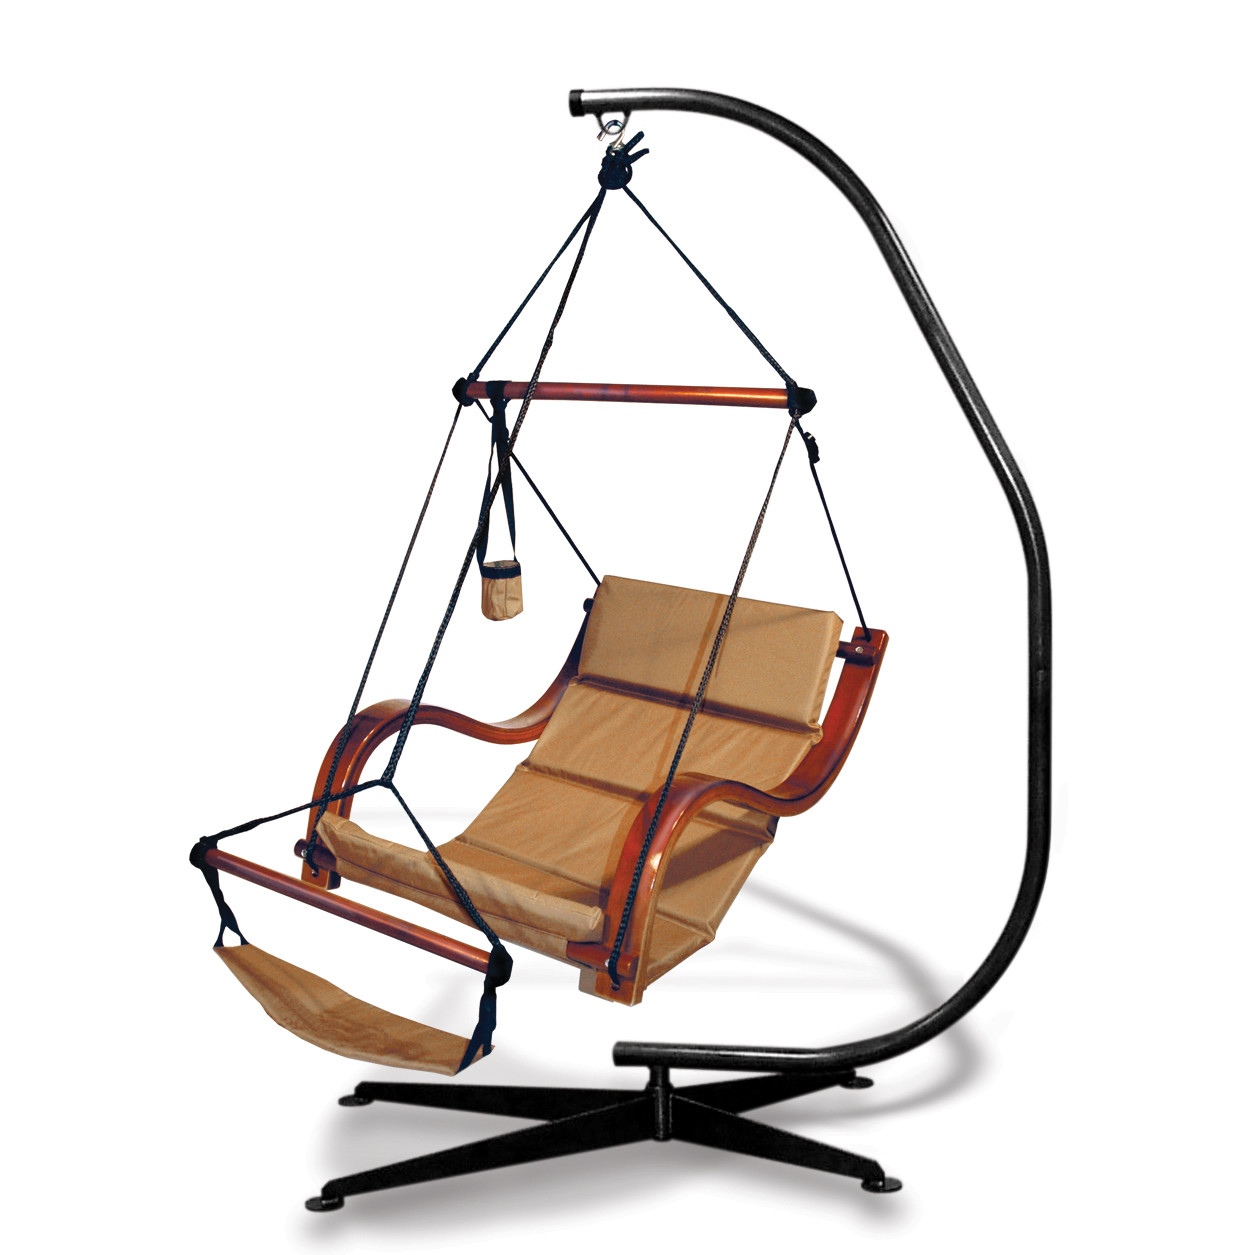 Hammock Hanging Chair Best Rest Hammock Hanging Chair With C Frame Stand Tan